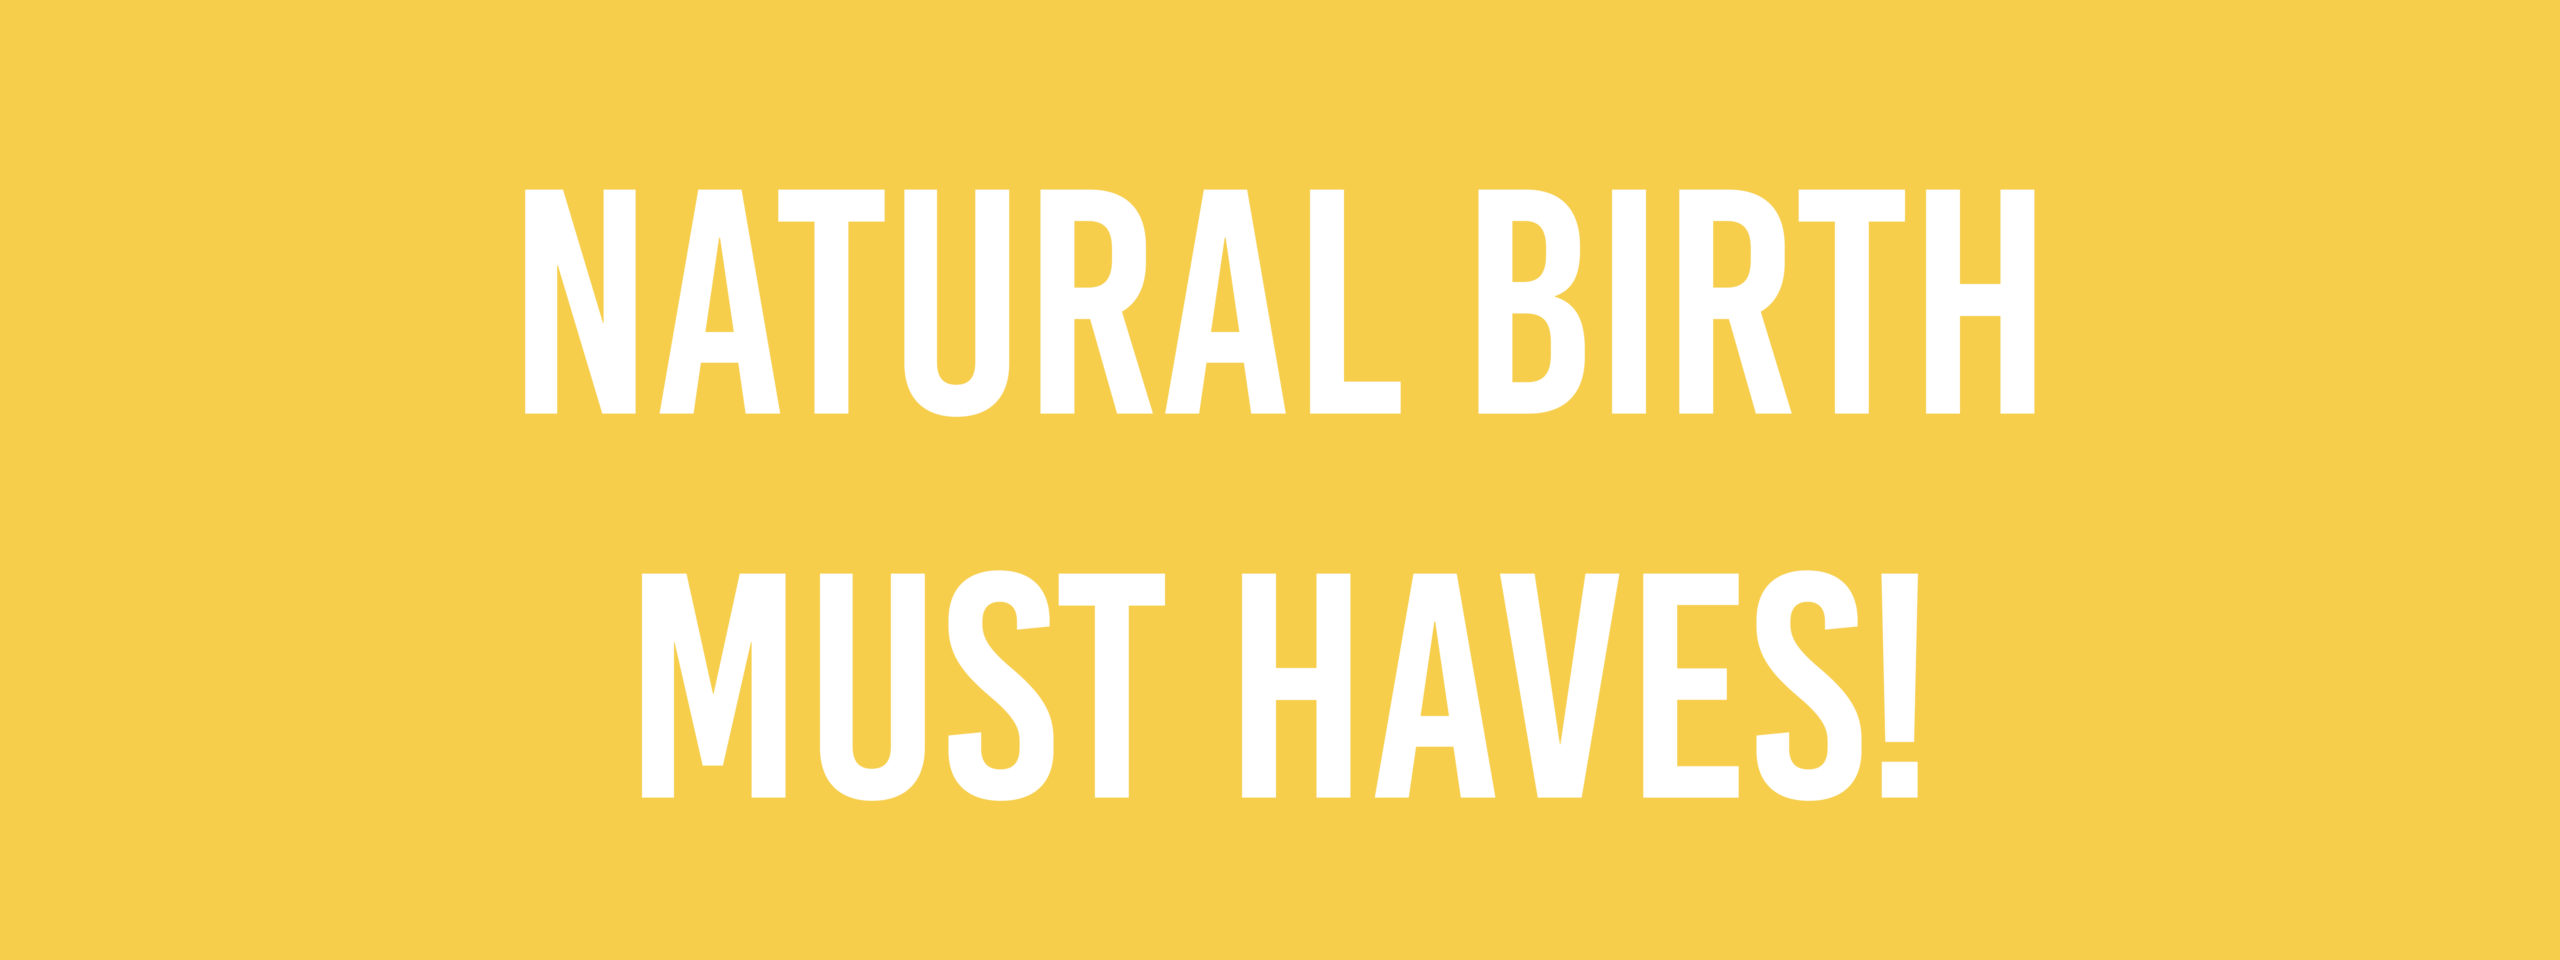 Natural Birth Must Haves Header